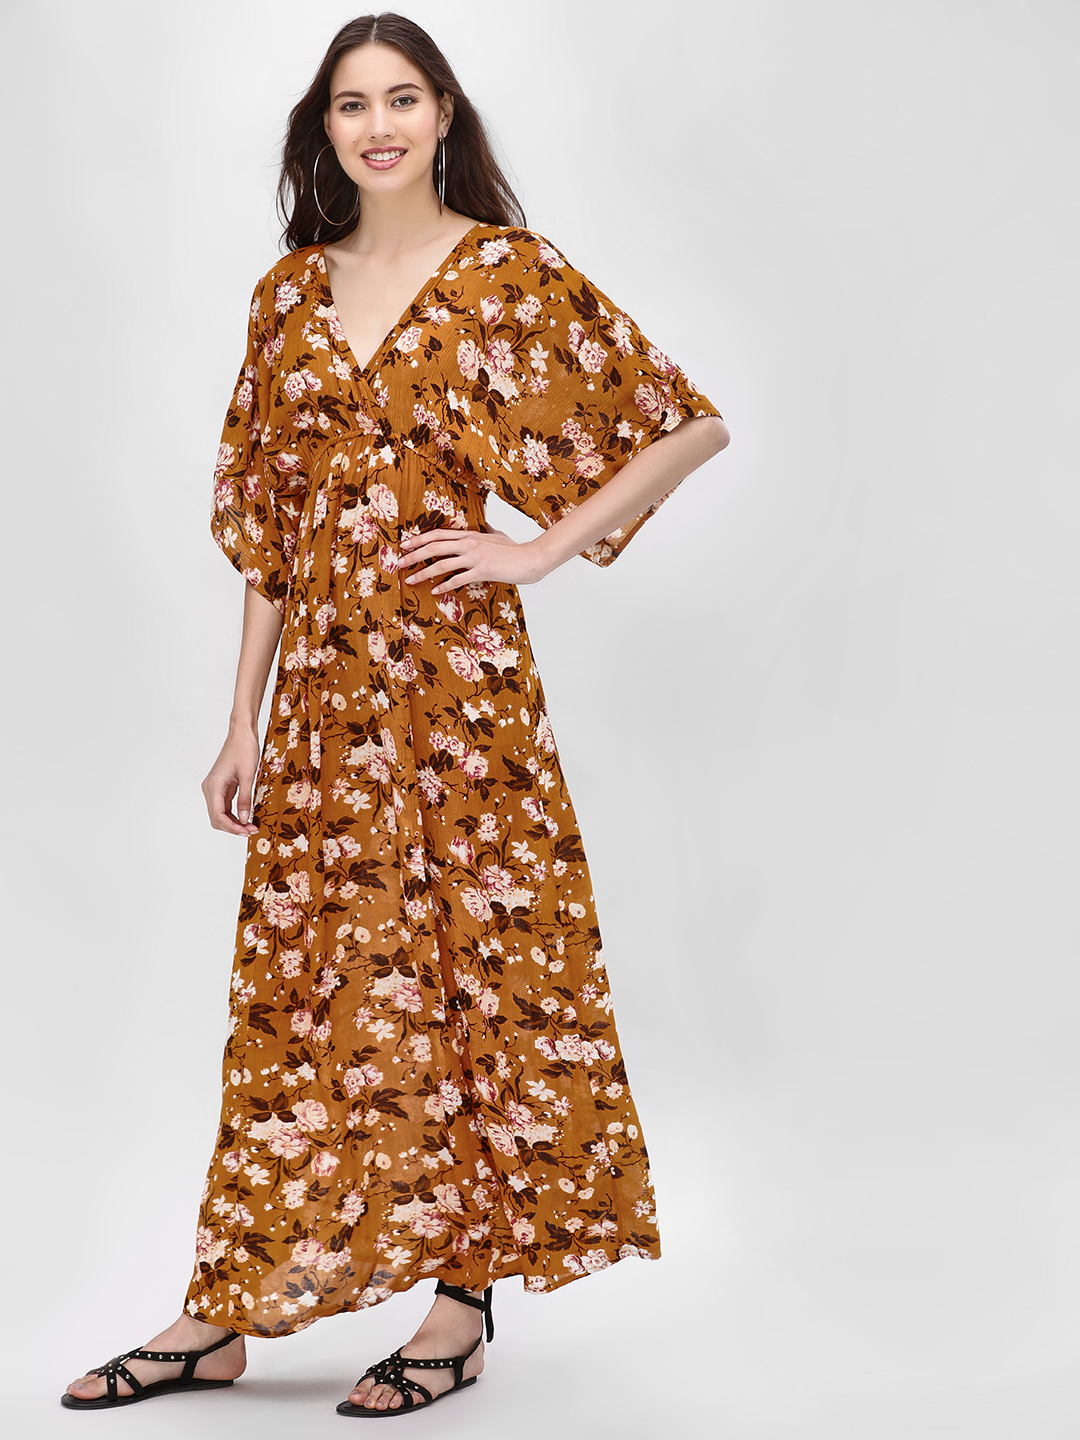 Kisscoast Print Floral Printed Maxi Dress 1